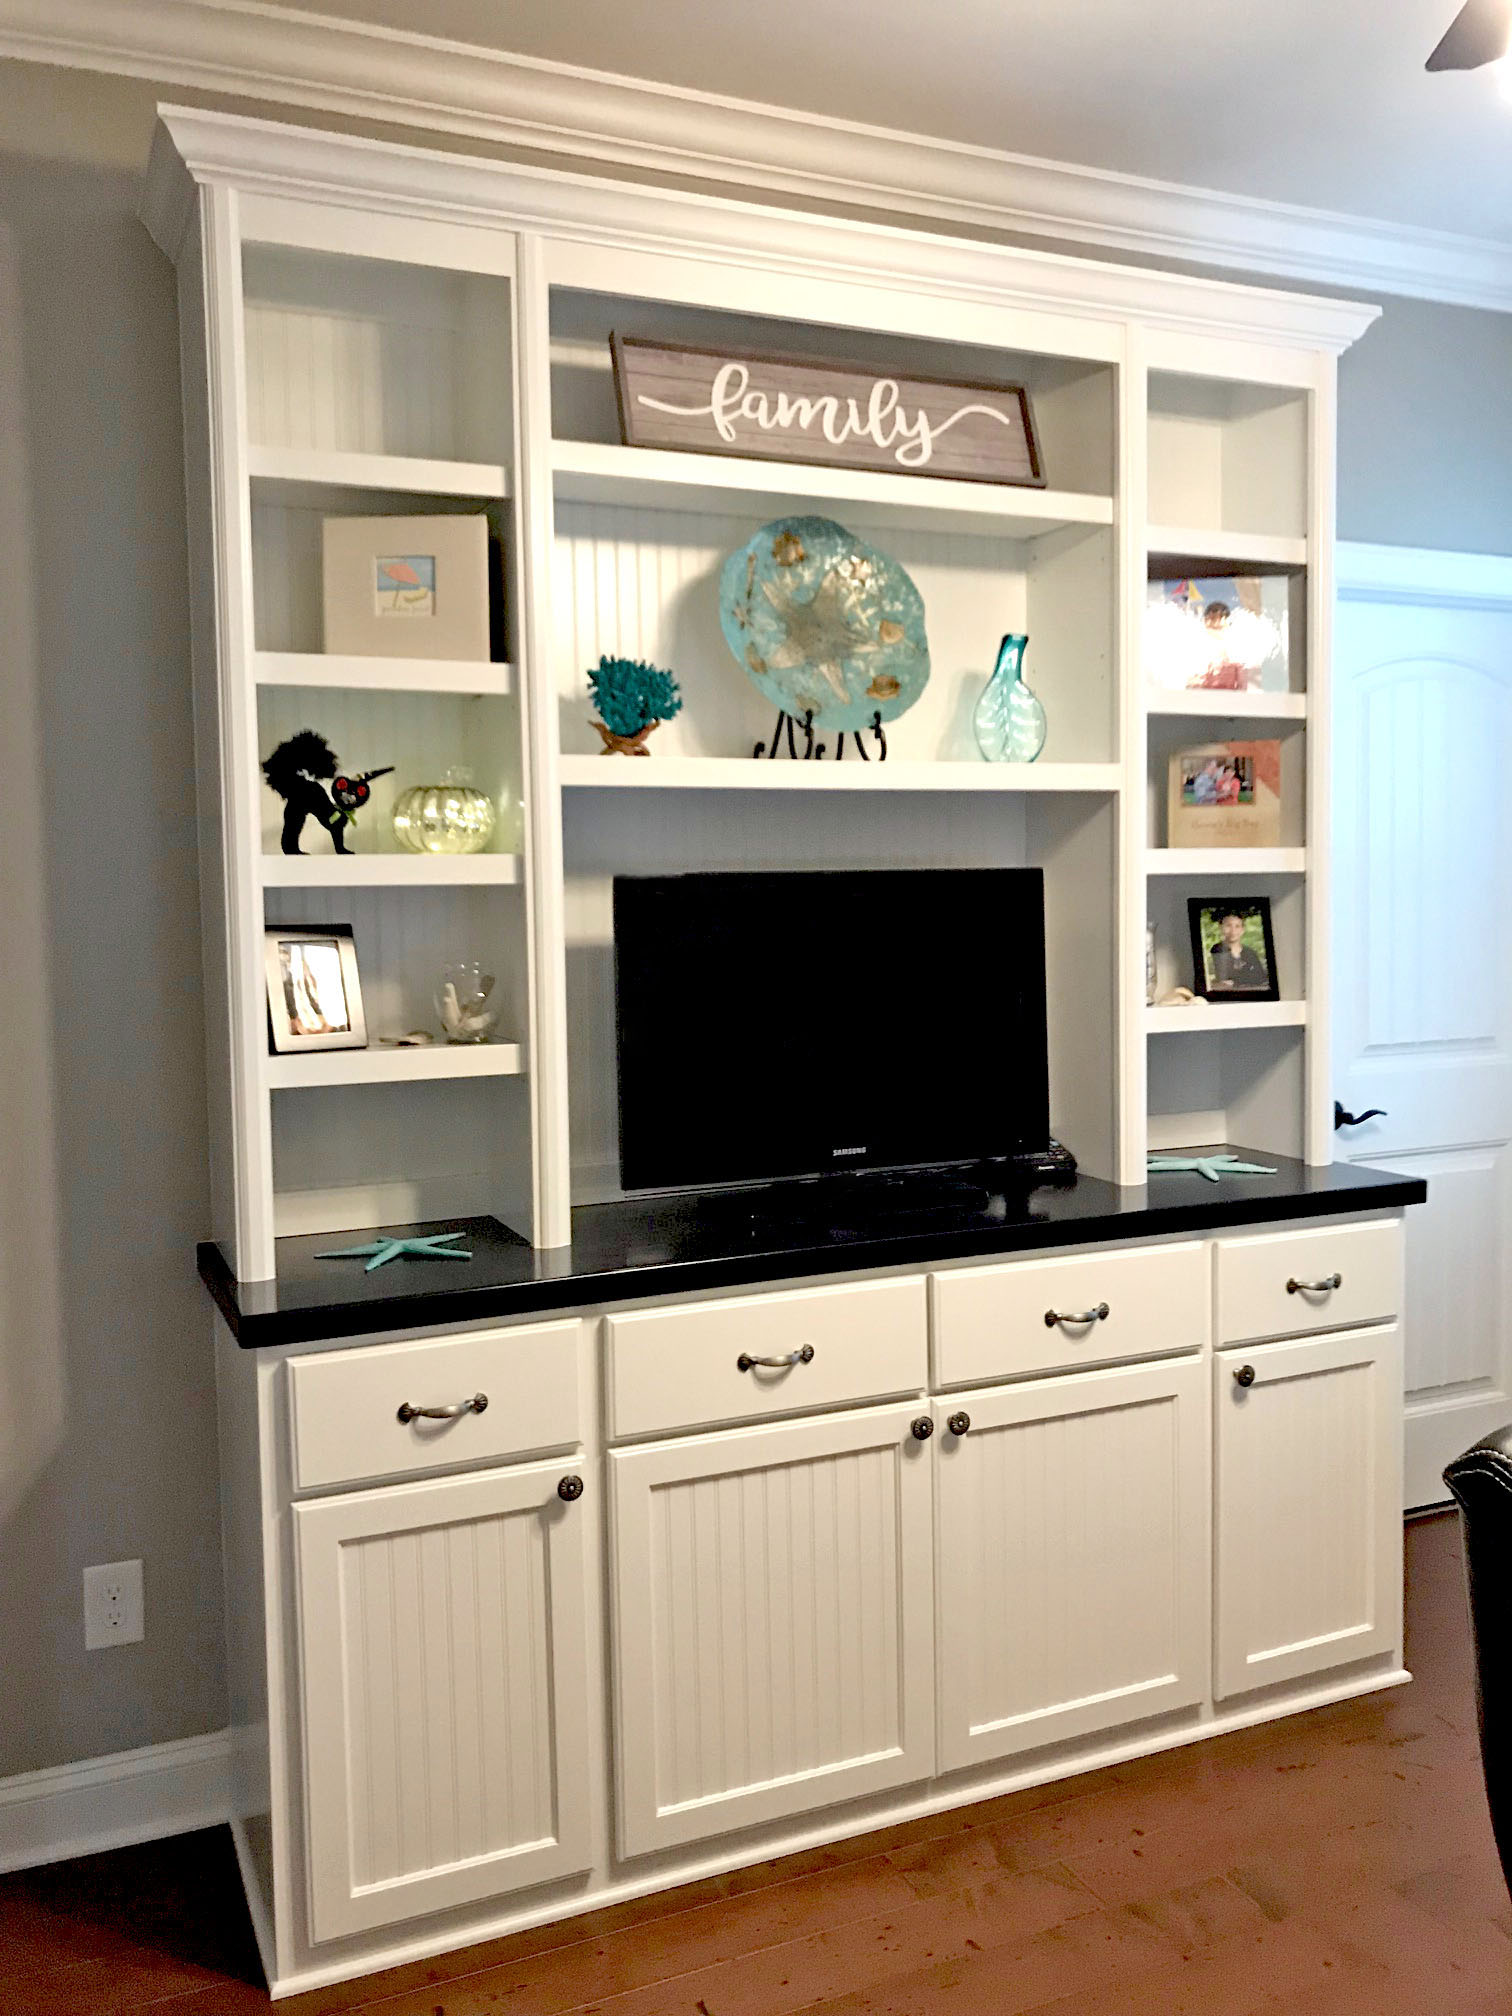 Built-In with Beadboard Backer, Adjustable Shelves, TV Opening, Stain Countertop, Slab Drawers, and Shaker Beadboard Doors